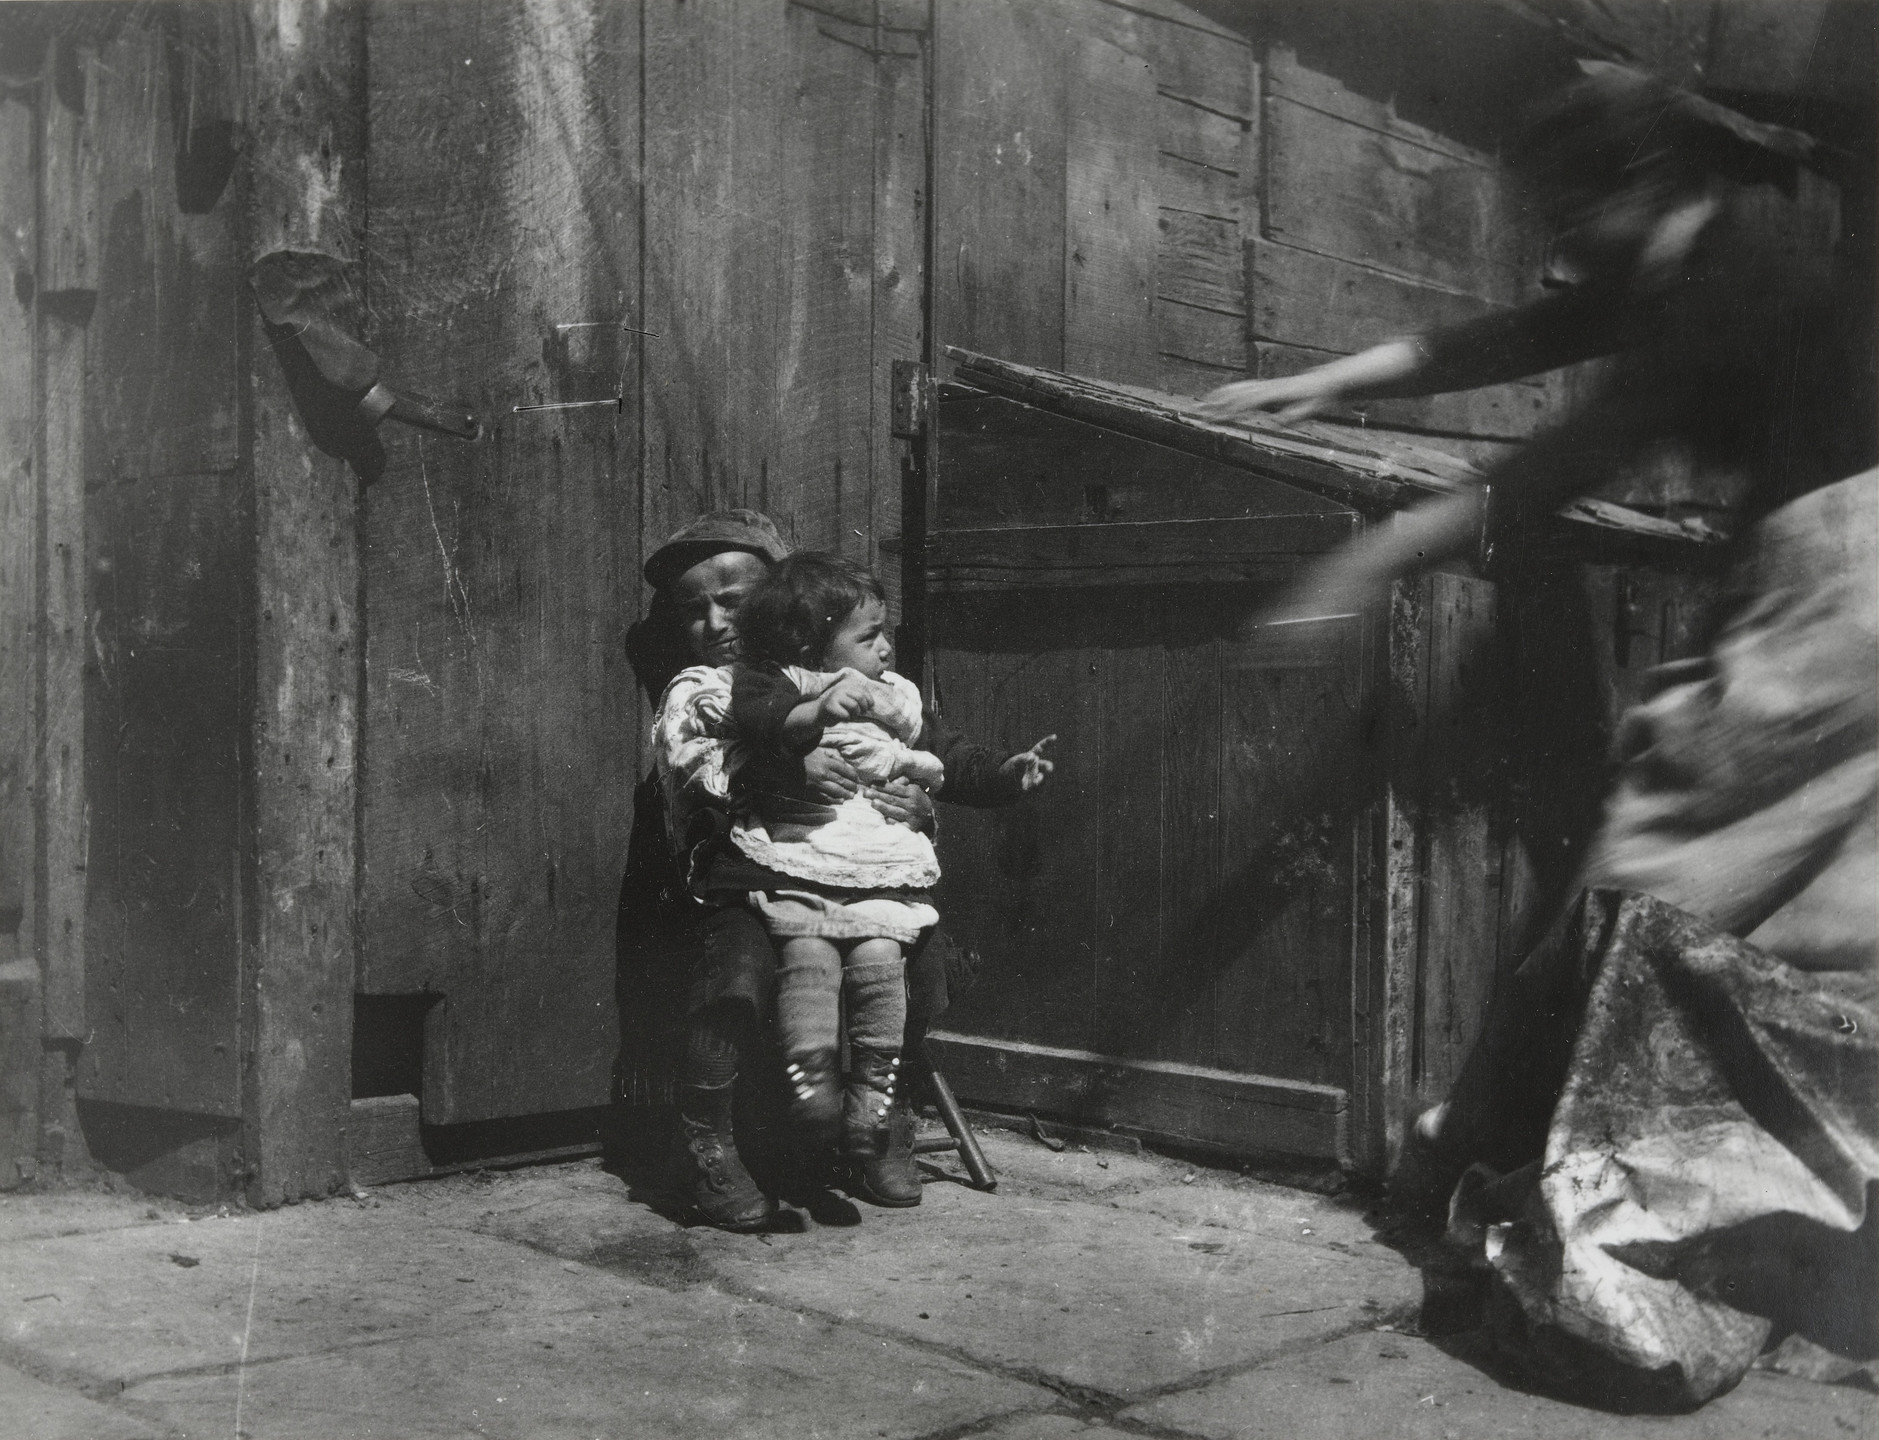 Jacob August Riis. Minding the Baby. Scene in Gotham Court. 1889